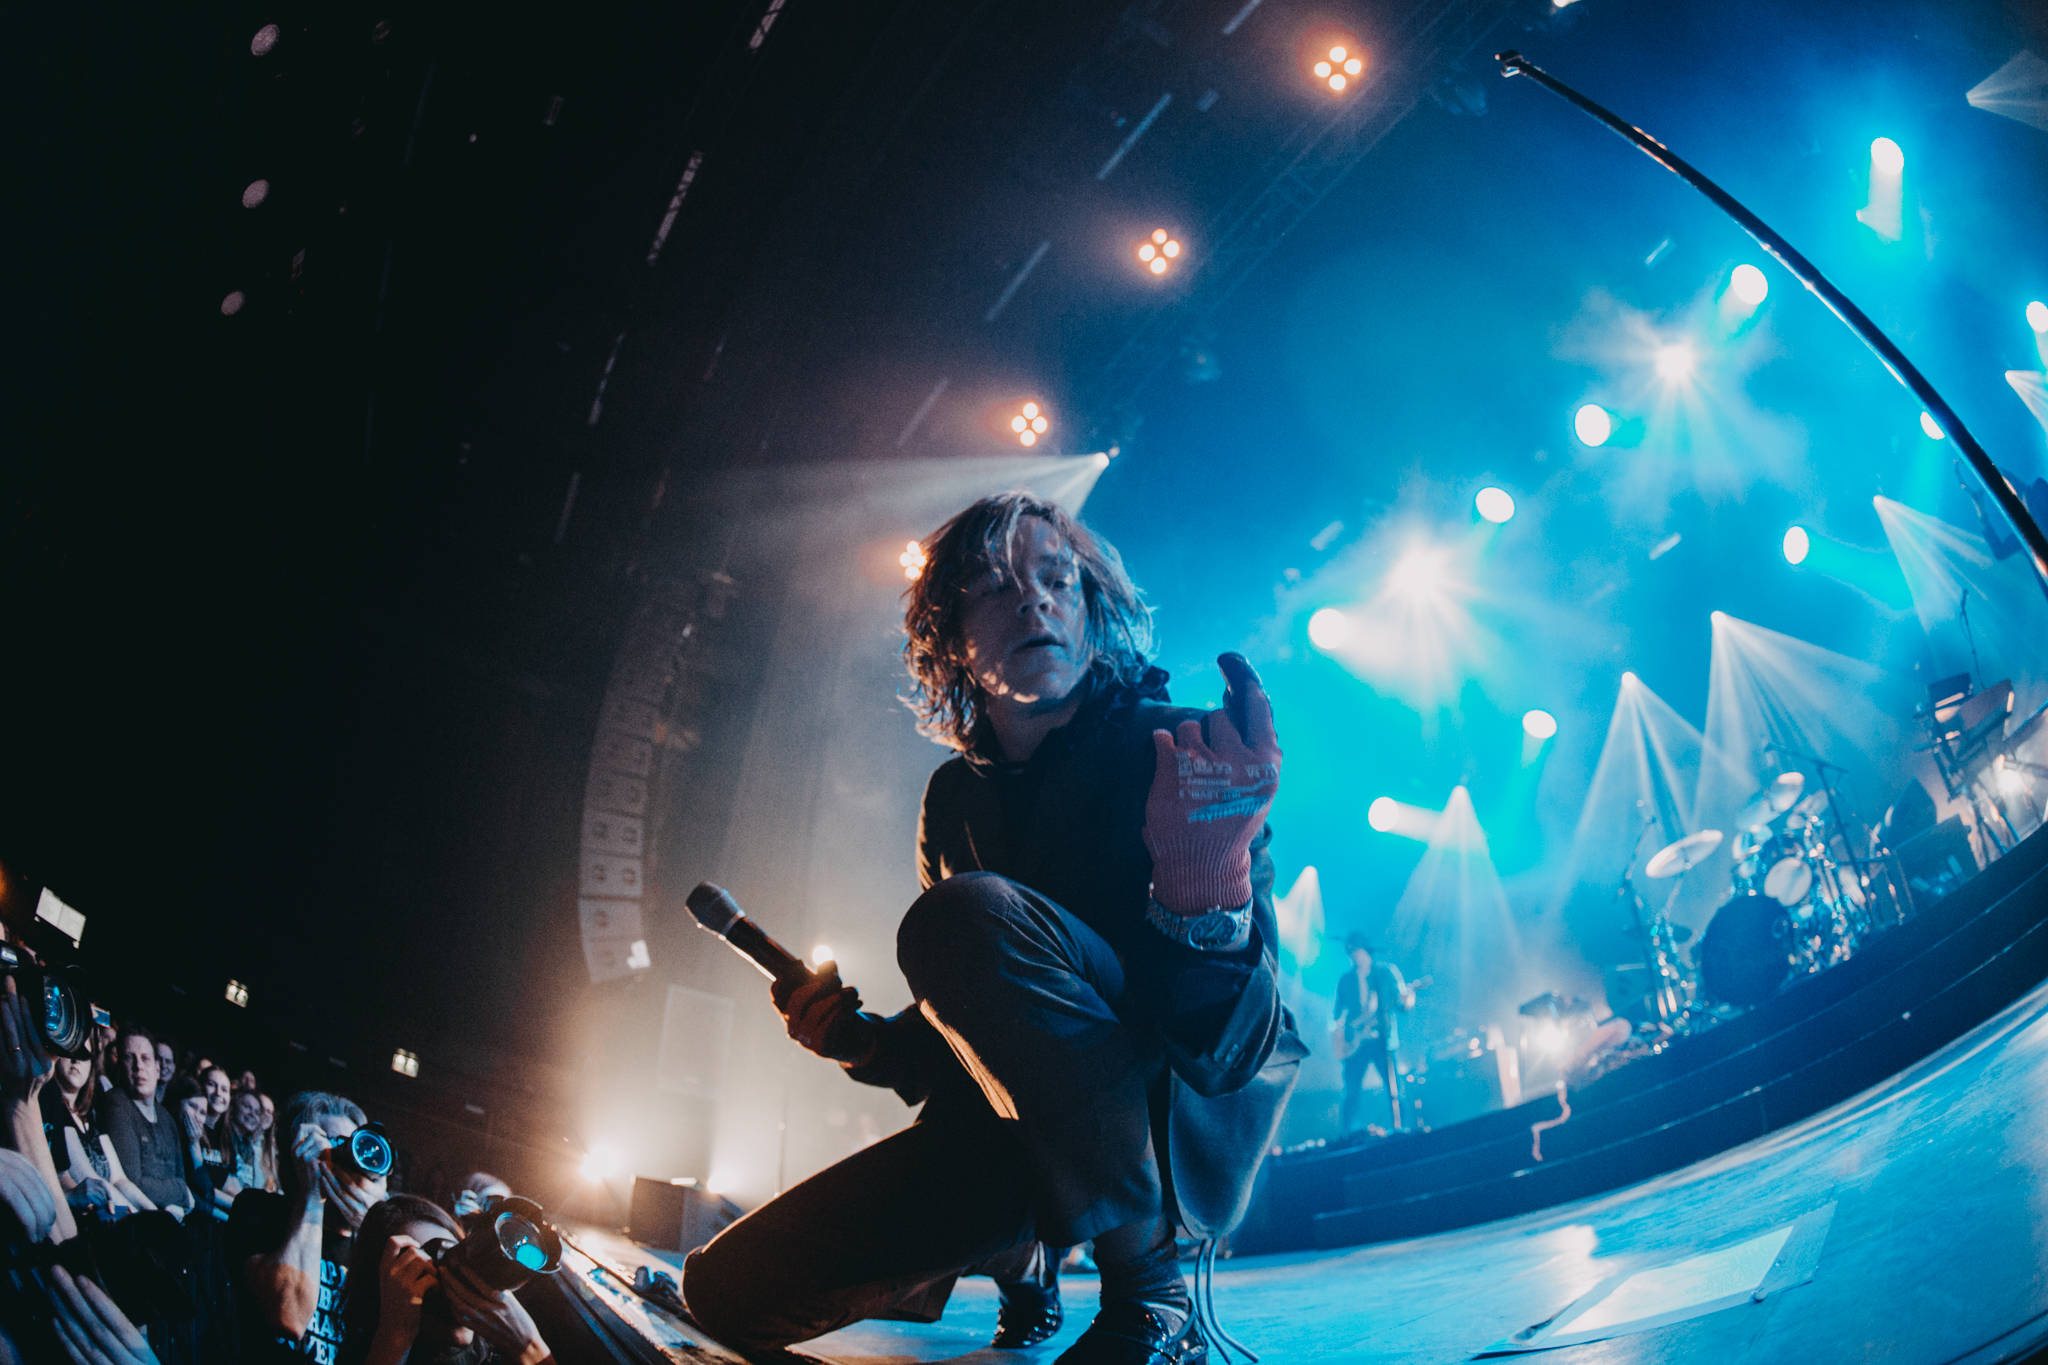 Cage the Elephant in Tilburg, one of the last shows we covered for you in 2020. (c) Natasja de Vries